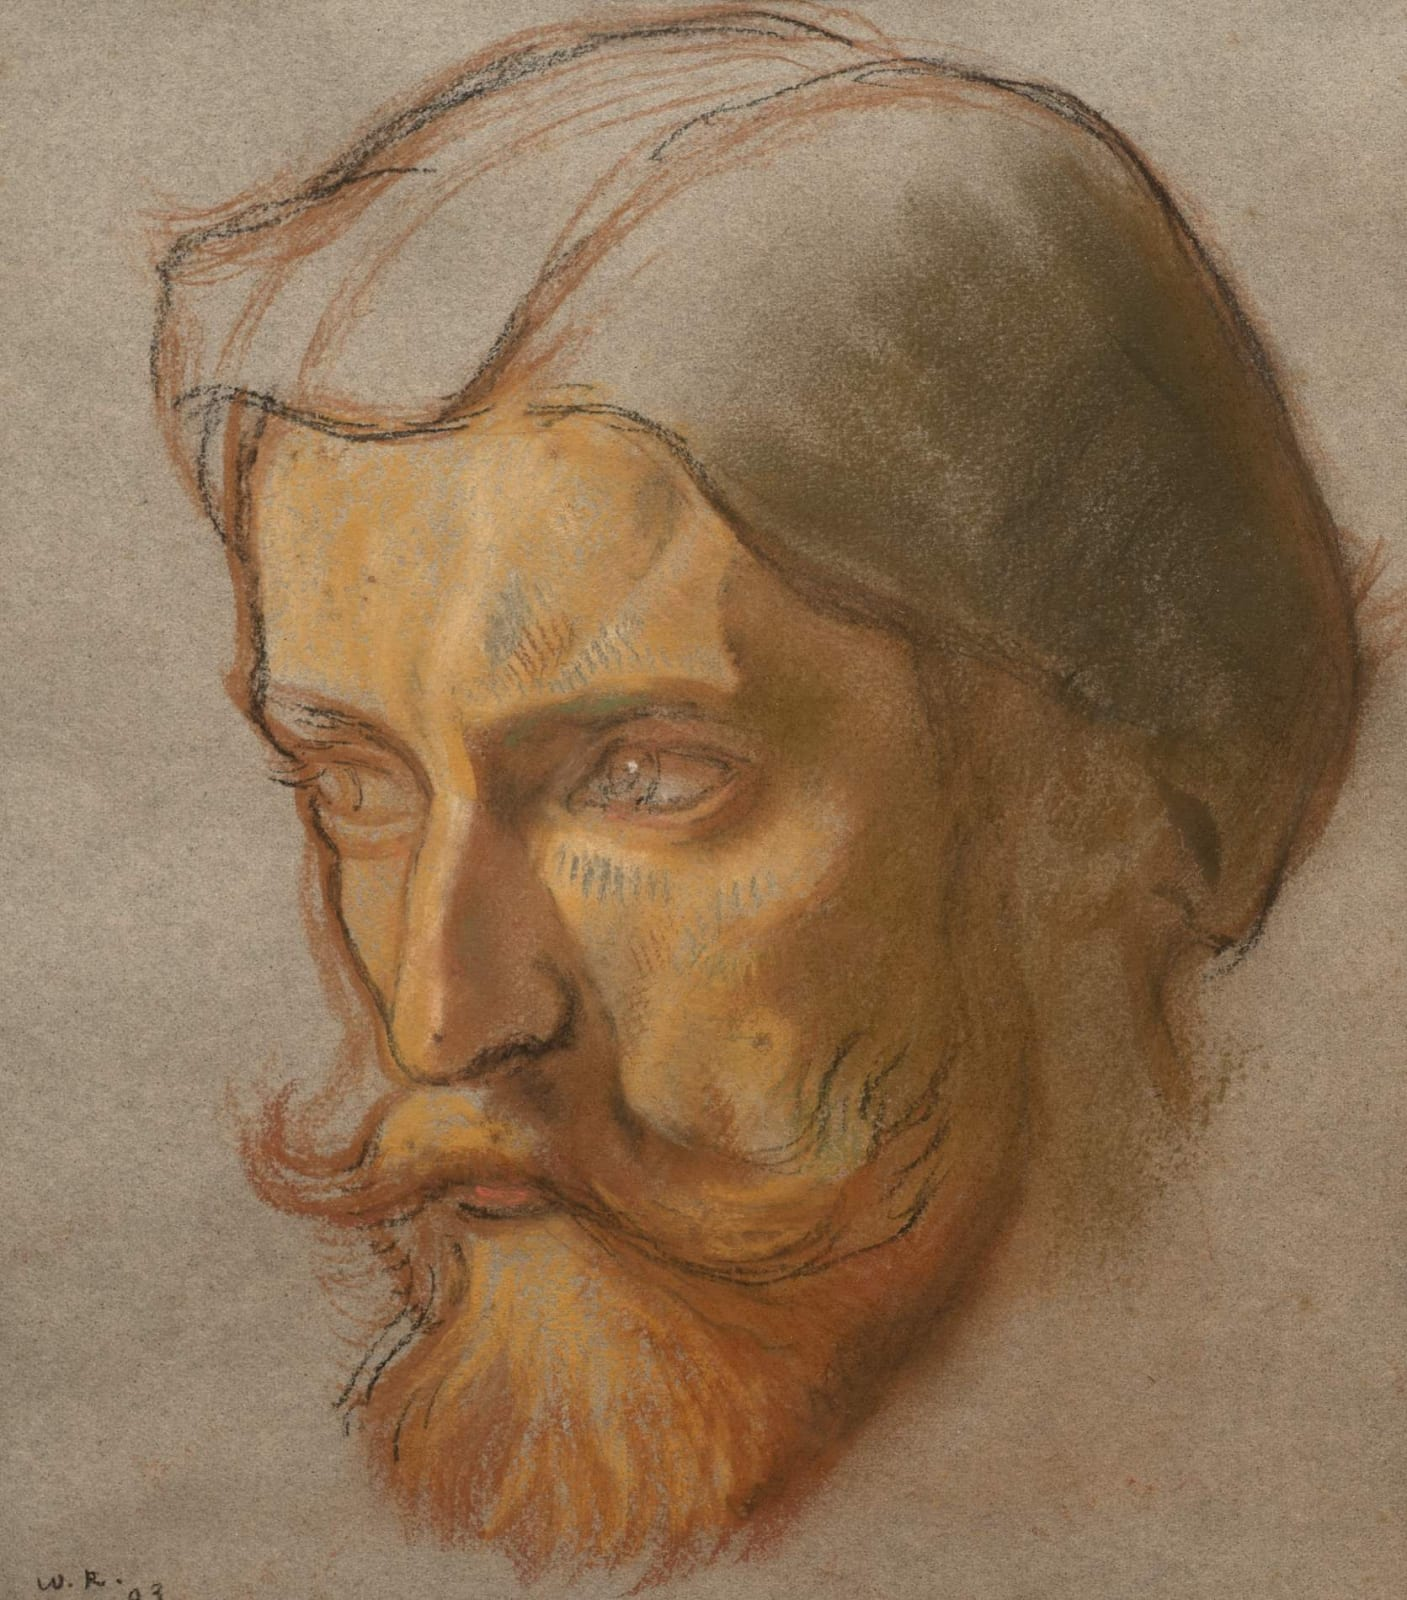 William Rothenstein (1872-1945) Augustus John 1903 Pastel on paper 22 x 19.5 cm Bradford Museums and Galleries To see and discover more about this artist click here